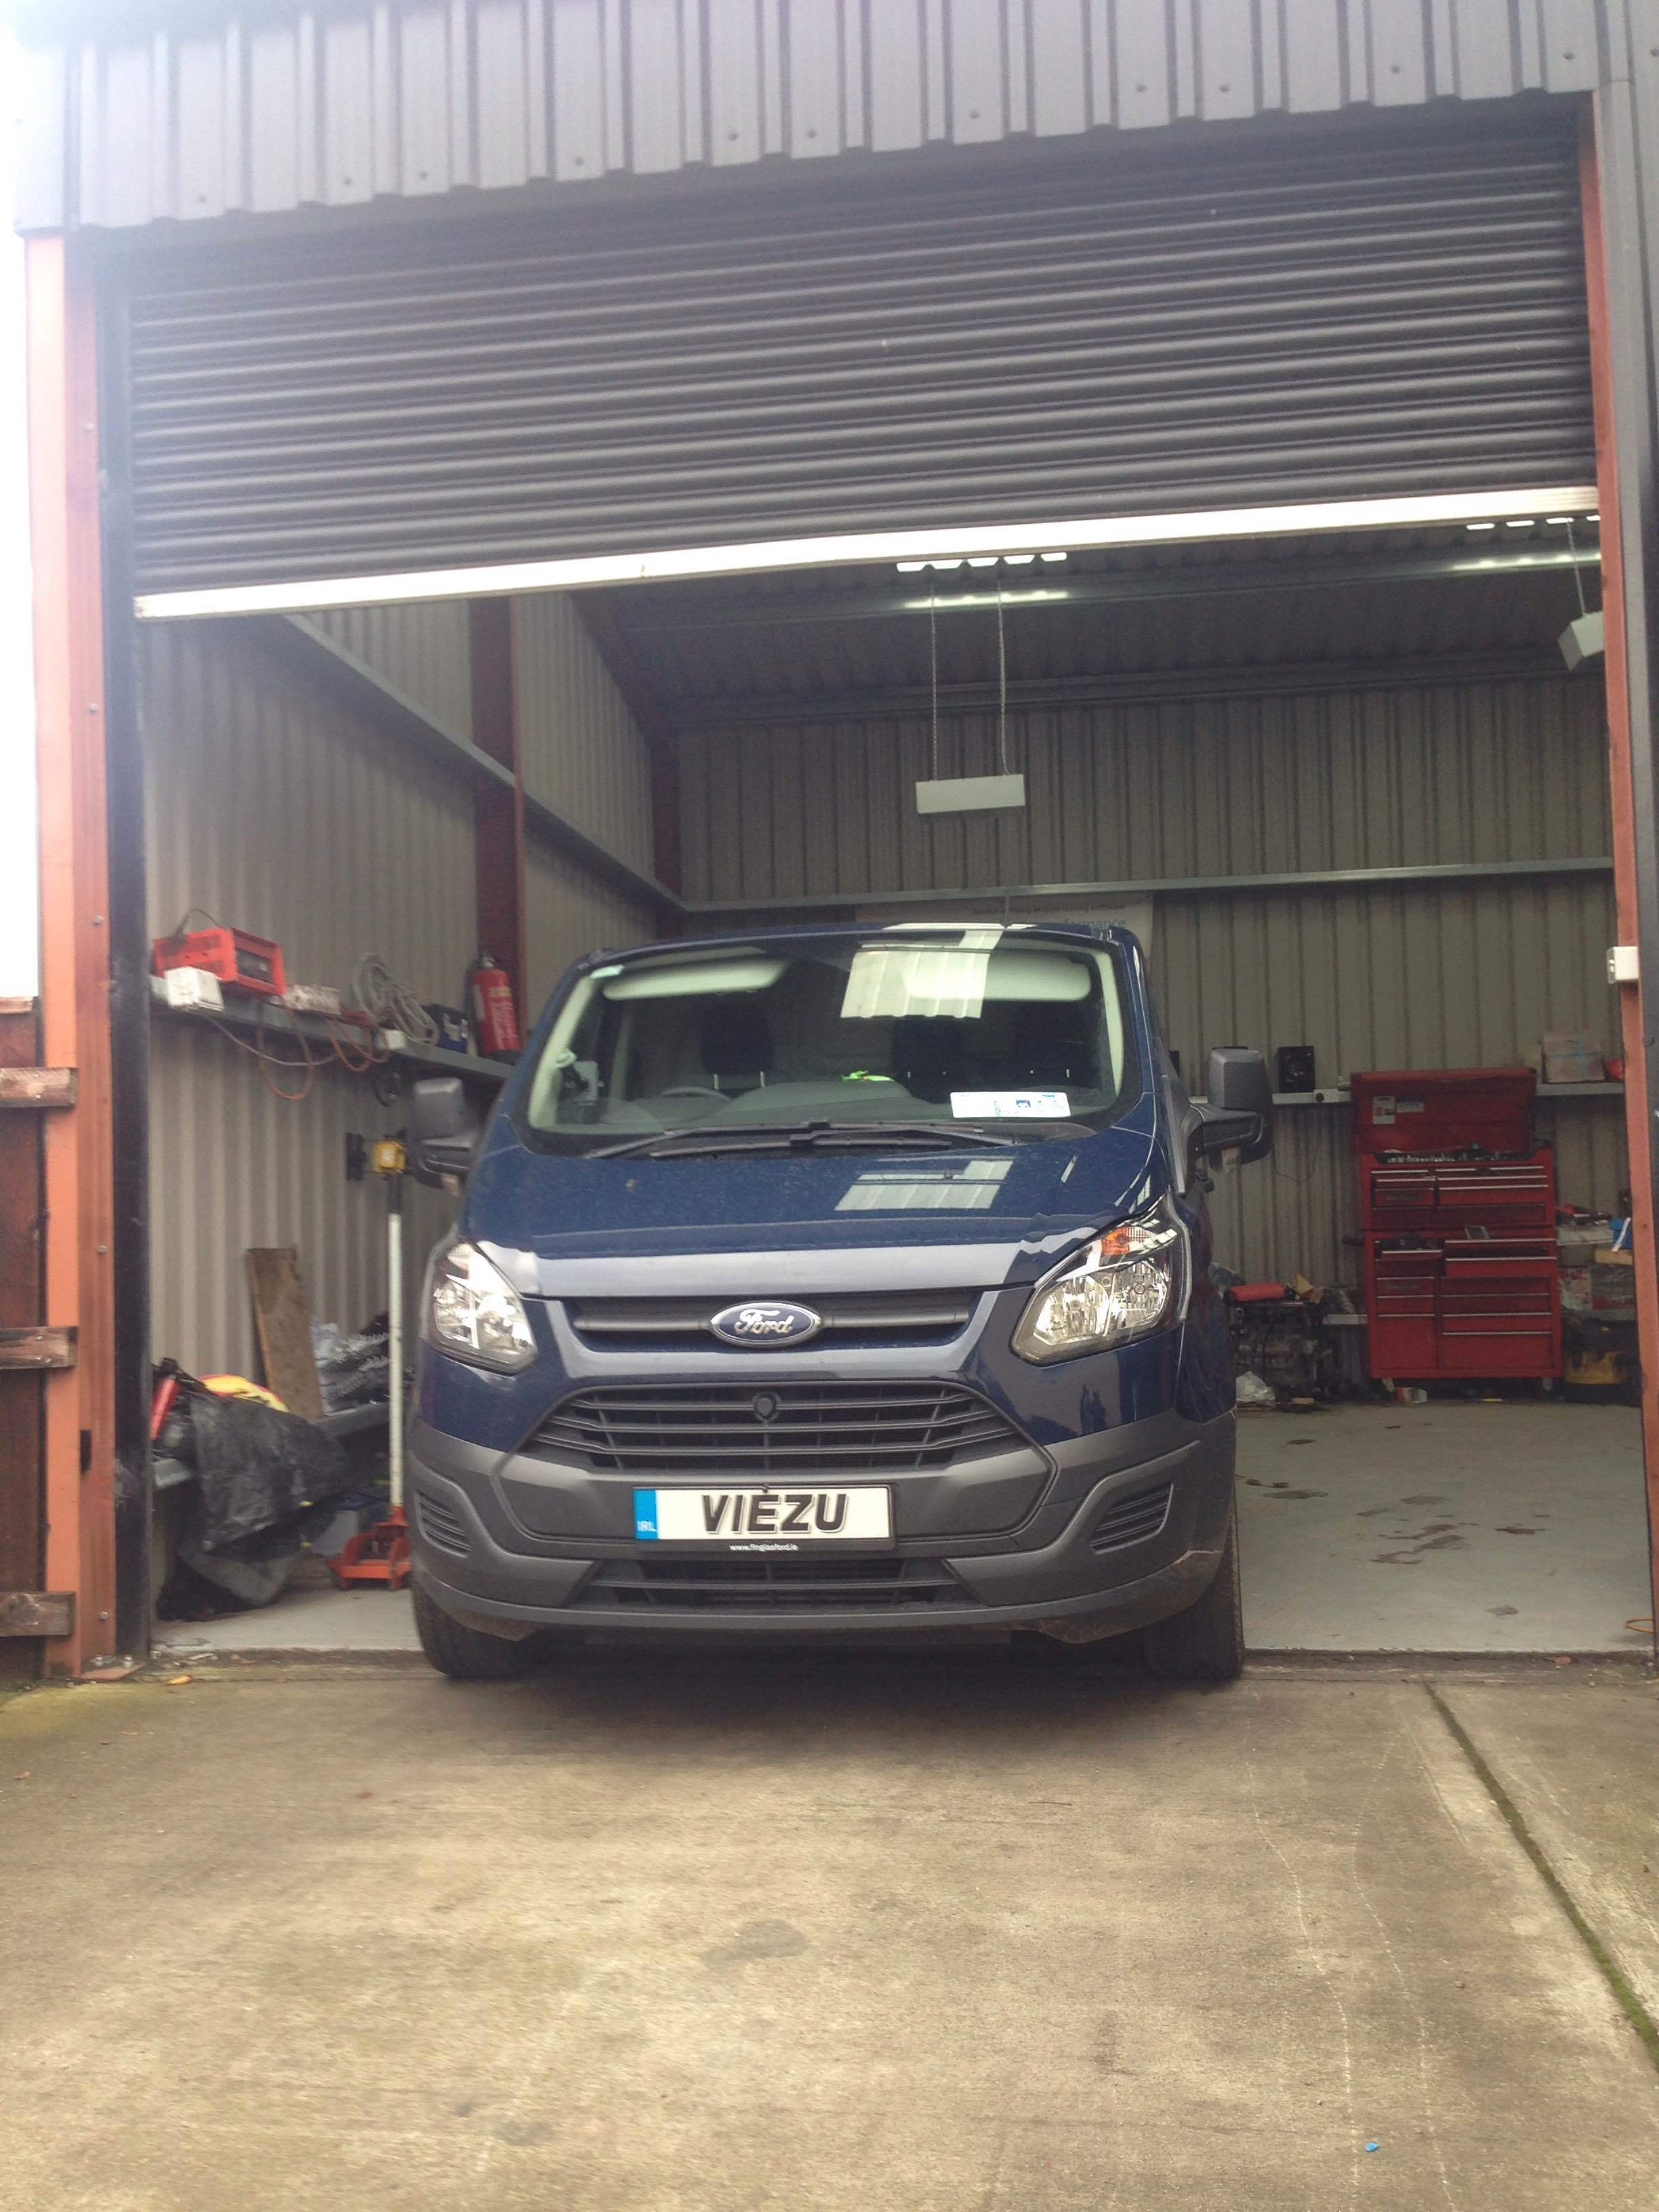 ecu remap transit ford custom viezu tuning.JPG